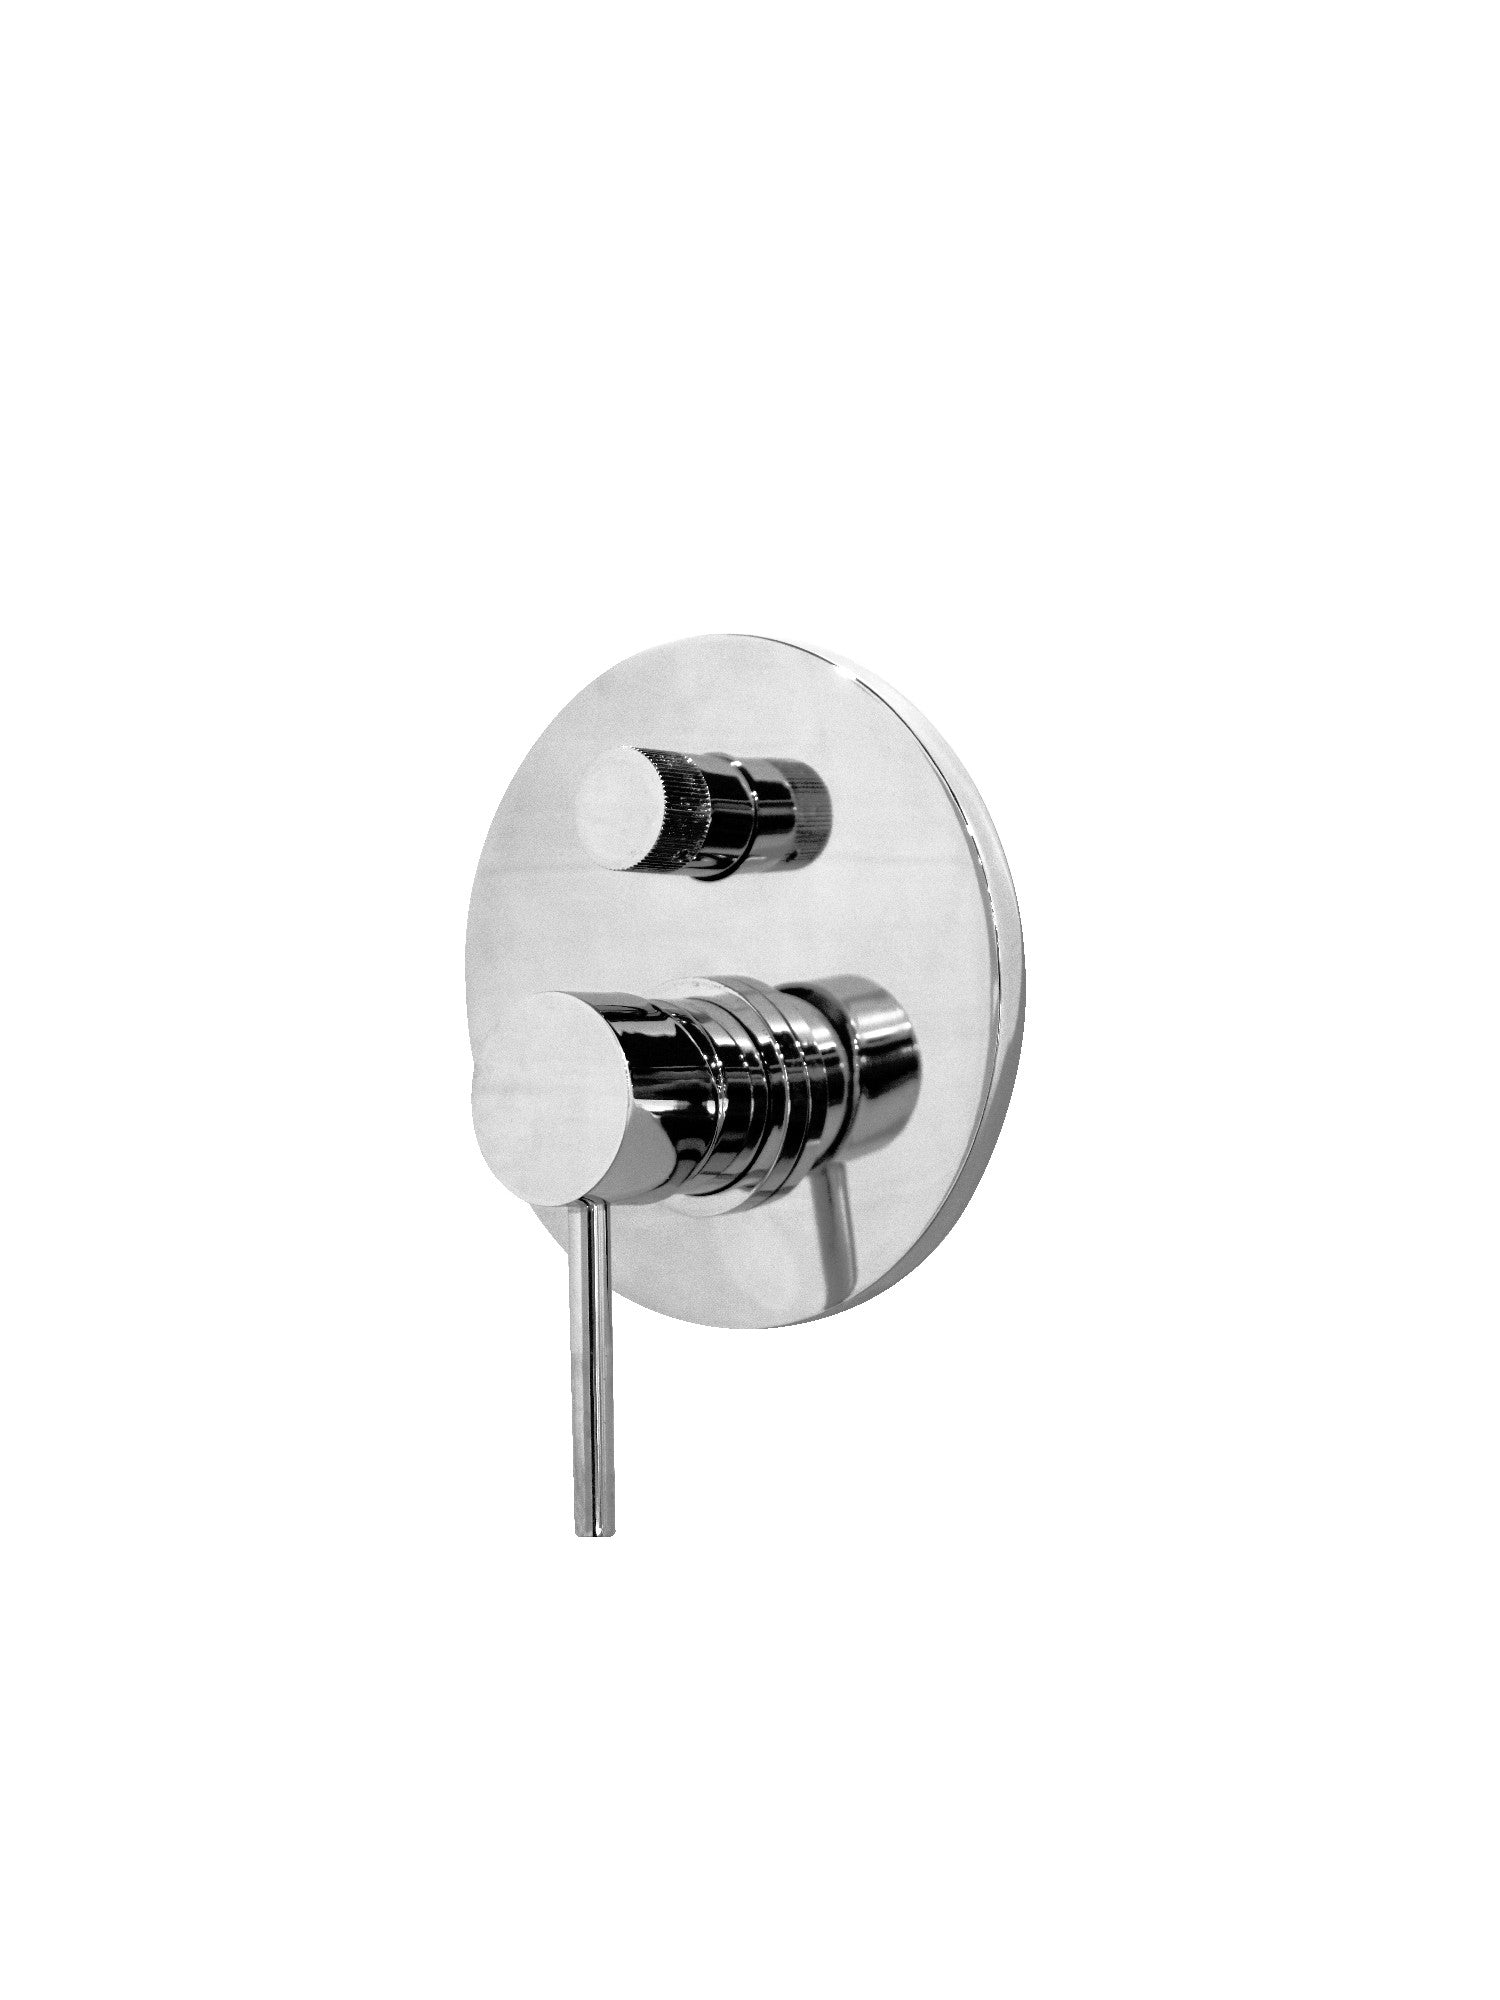 Tangent Concealed Bath/Shower Mixer #P100-10